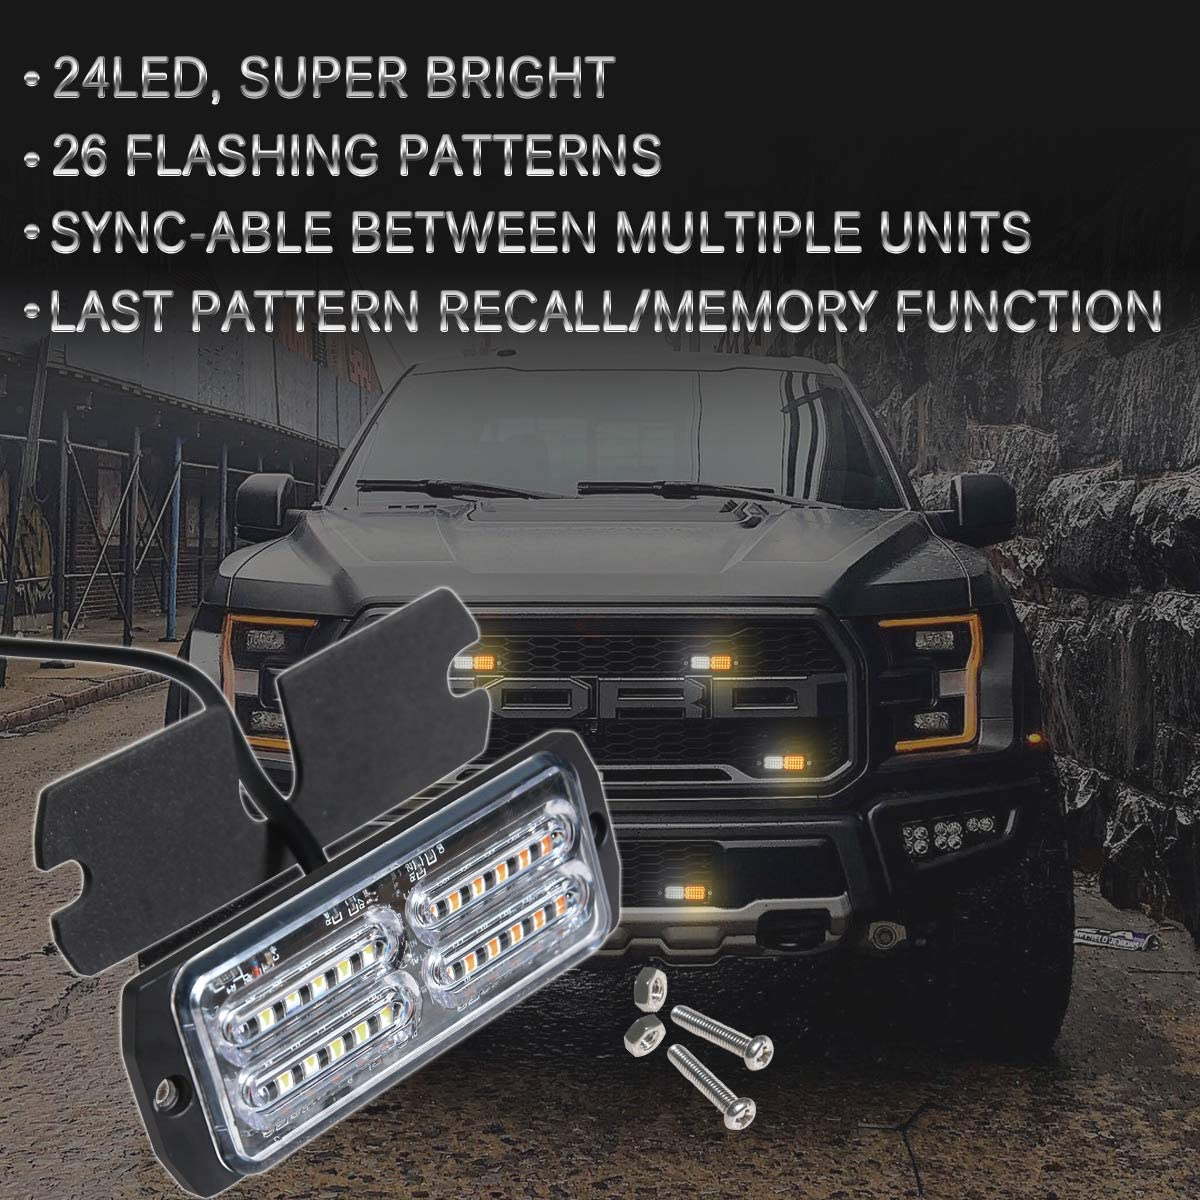 Waterproof Flashing Beacon Light with Digital Display Controller Upgraded Lumenix 4-Pack 12LED Sync Feature Surface Mount Emergency Hazard Warning Strobe Light for Truck Car Vehicle Amber//White